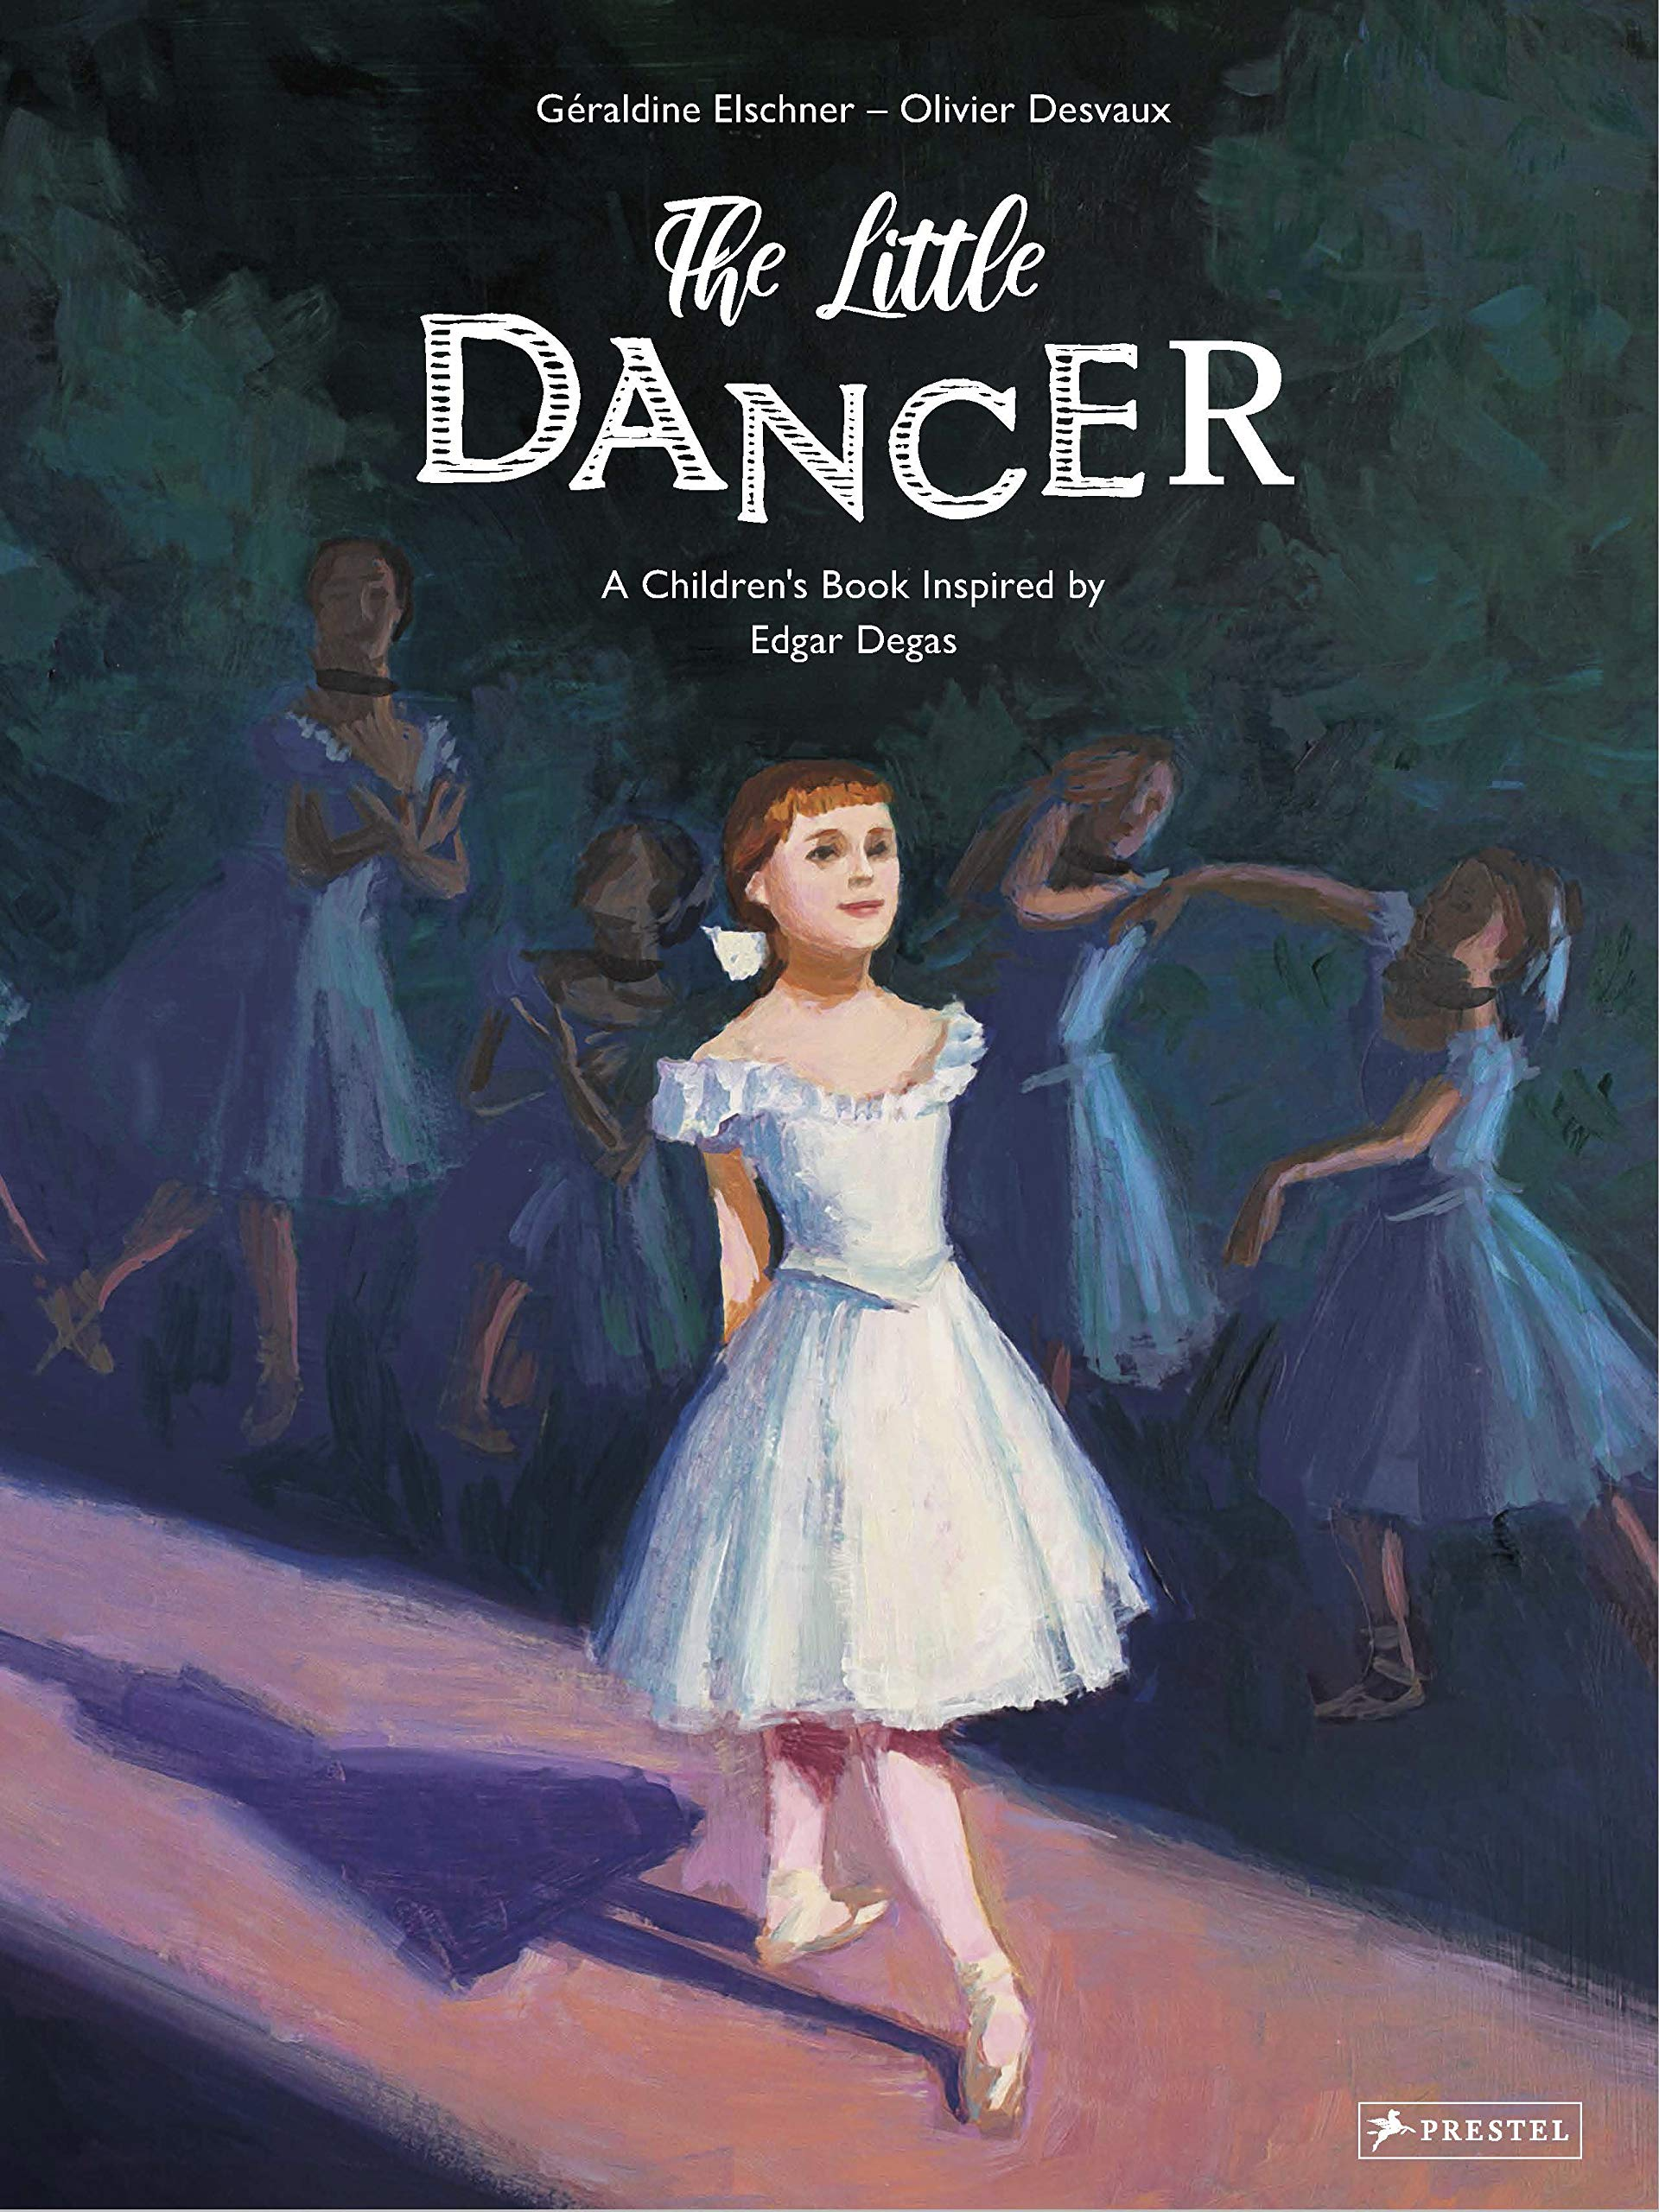 The Little Dancer: A Children's Book Inspired by Edgar Degas (Children's Books Inspired by Famous Artworks)